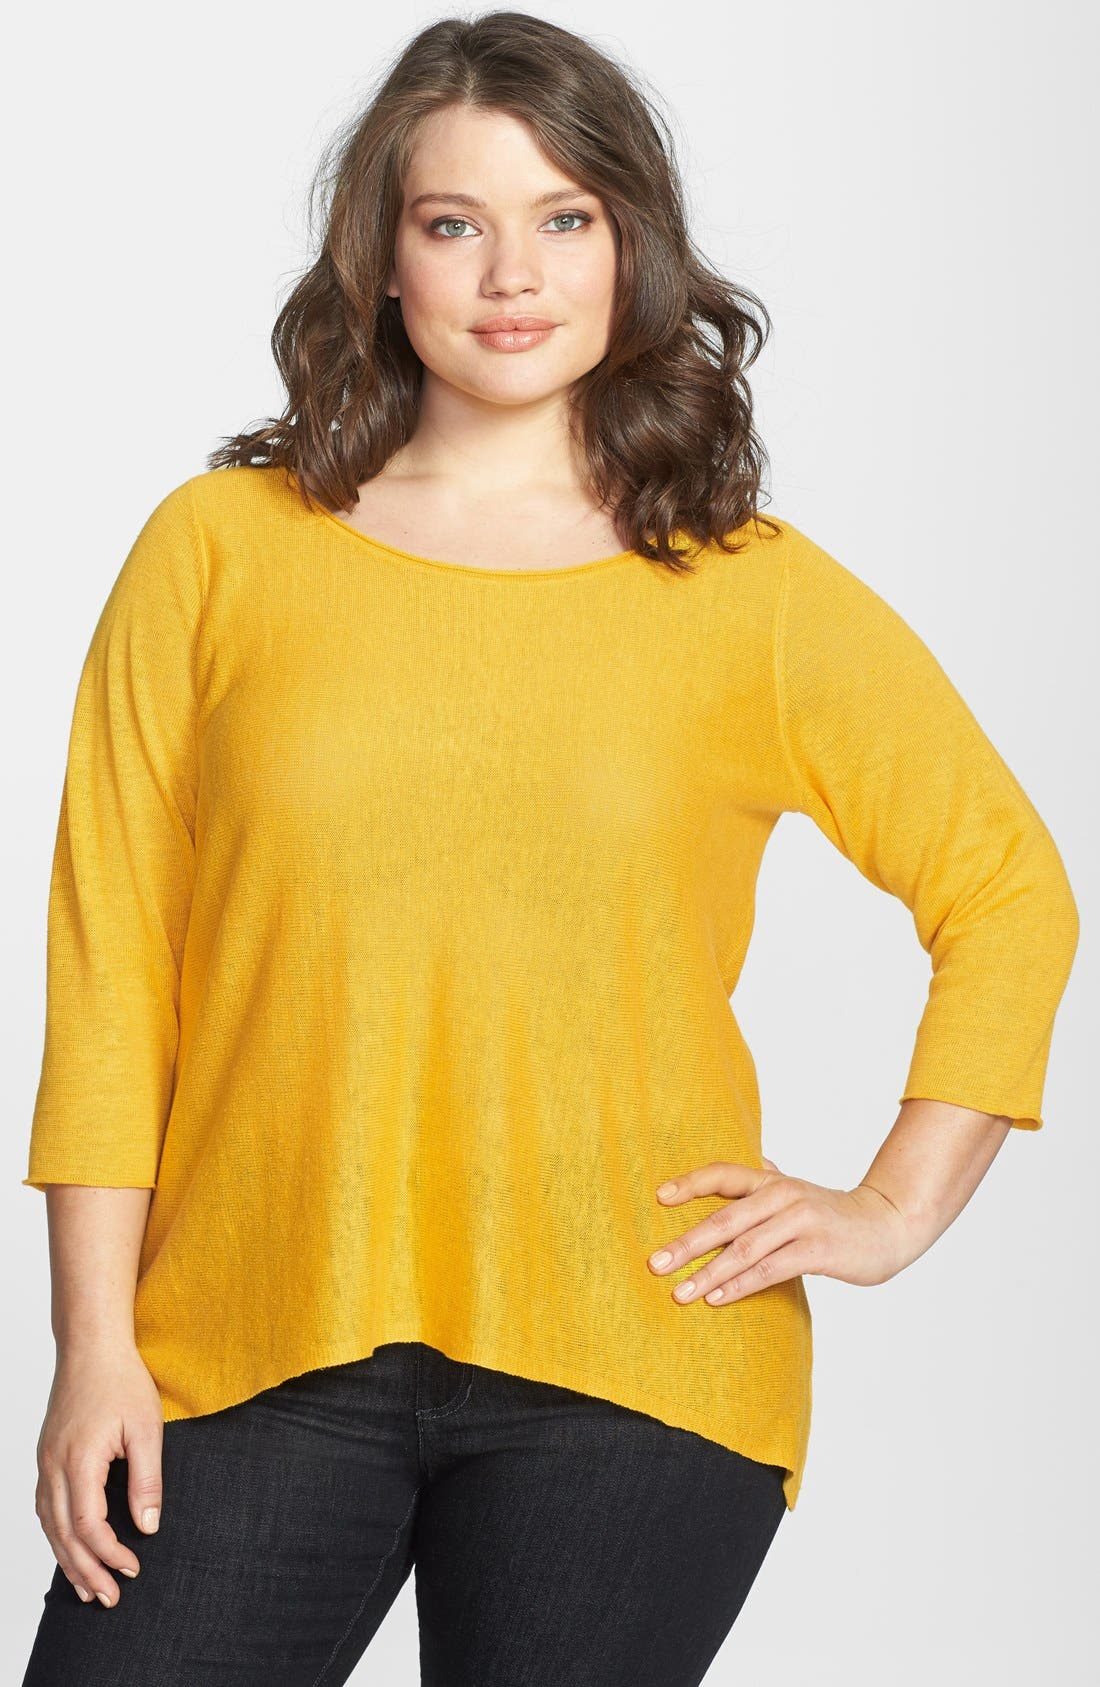 Alternate Image 1 Selected - Eileen Fisher Bateau Neck Organic Linen Top (Plus Size)